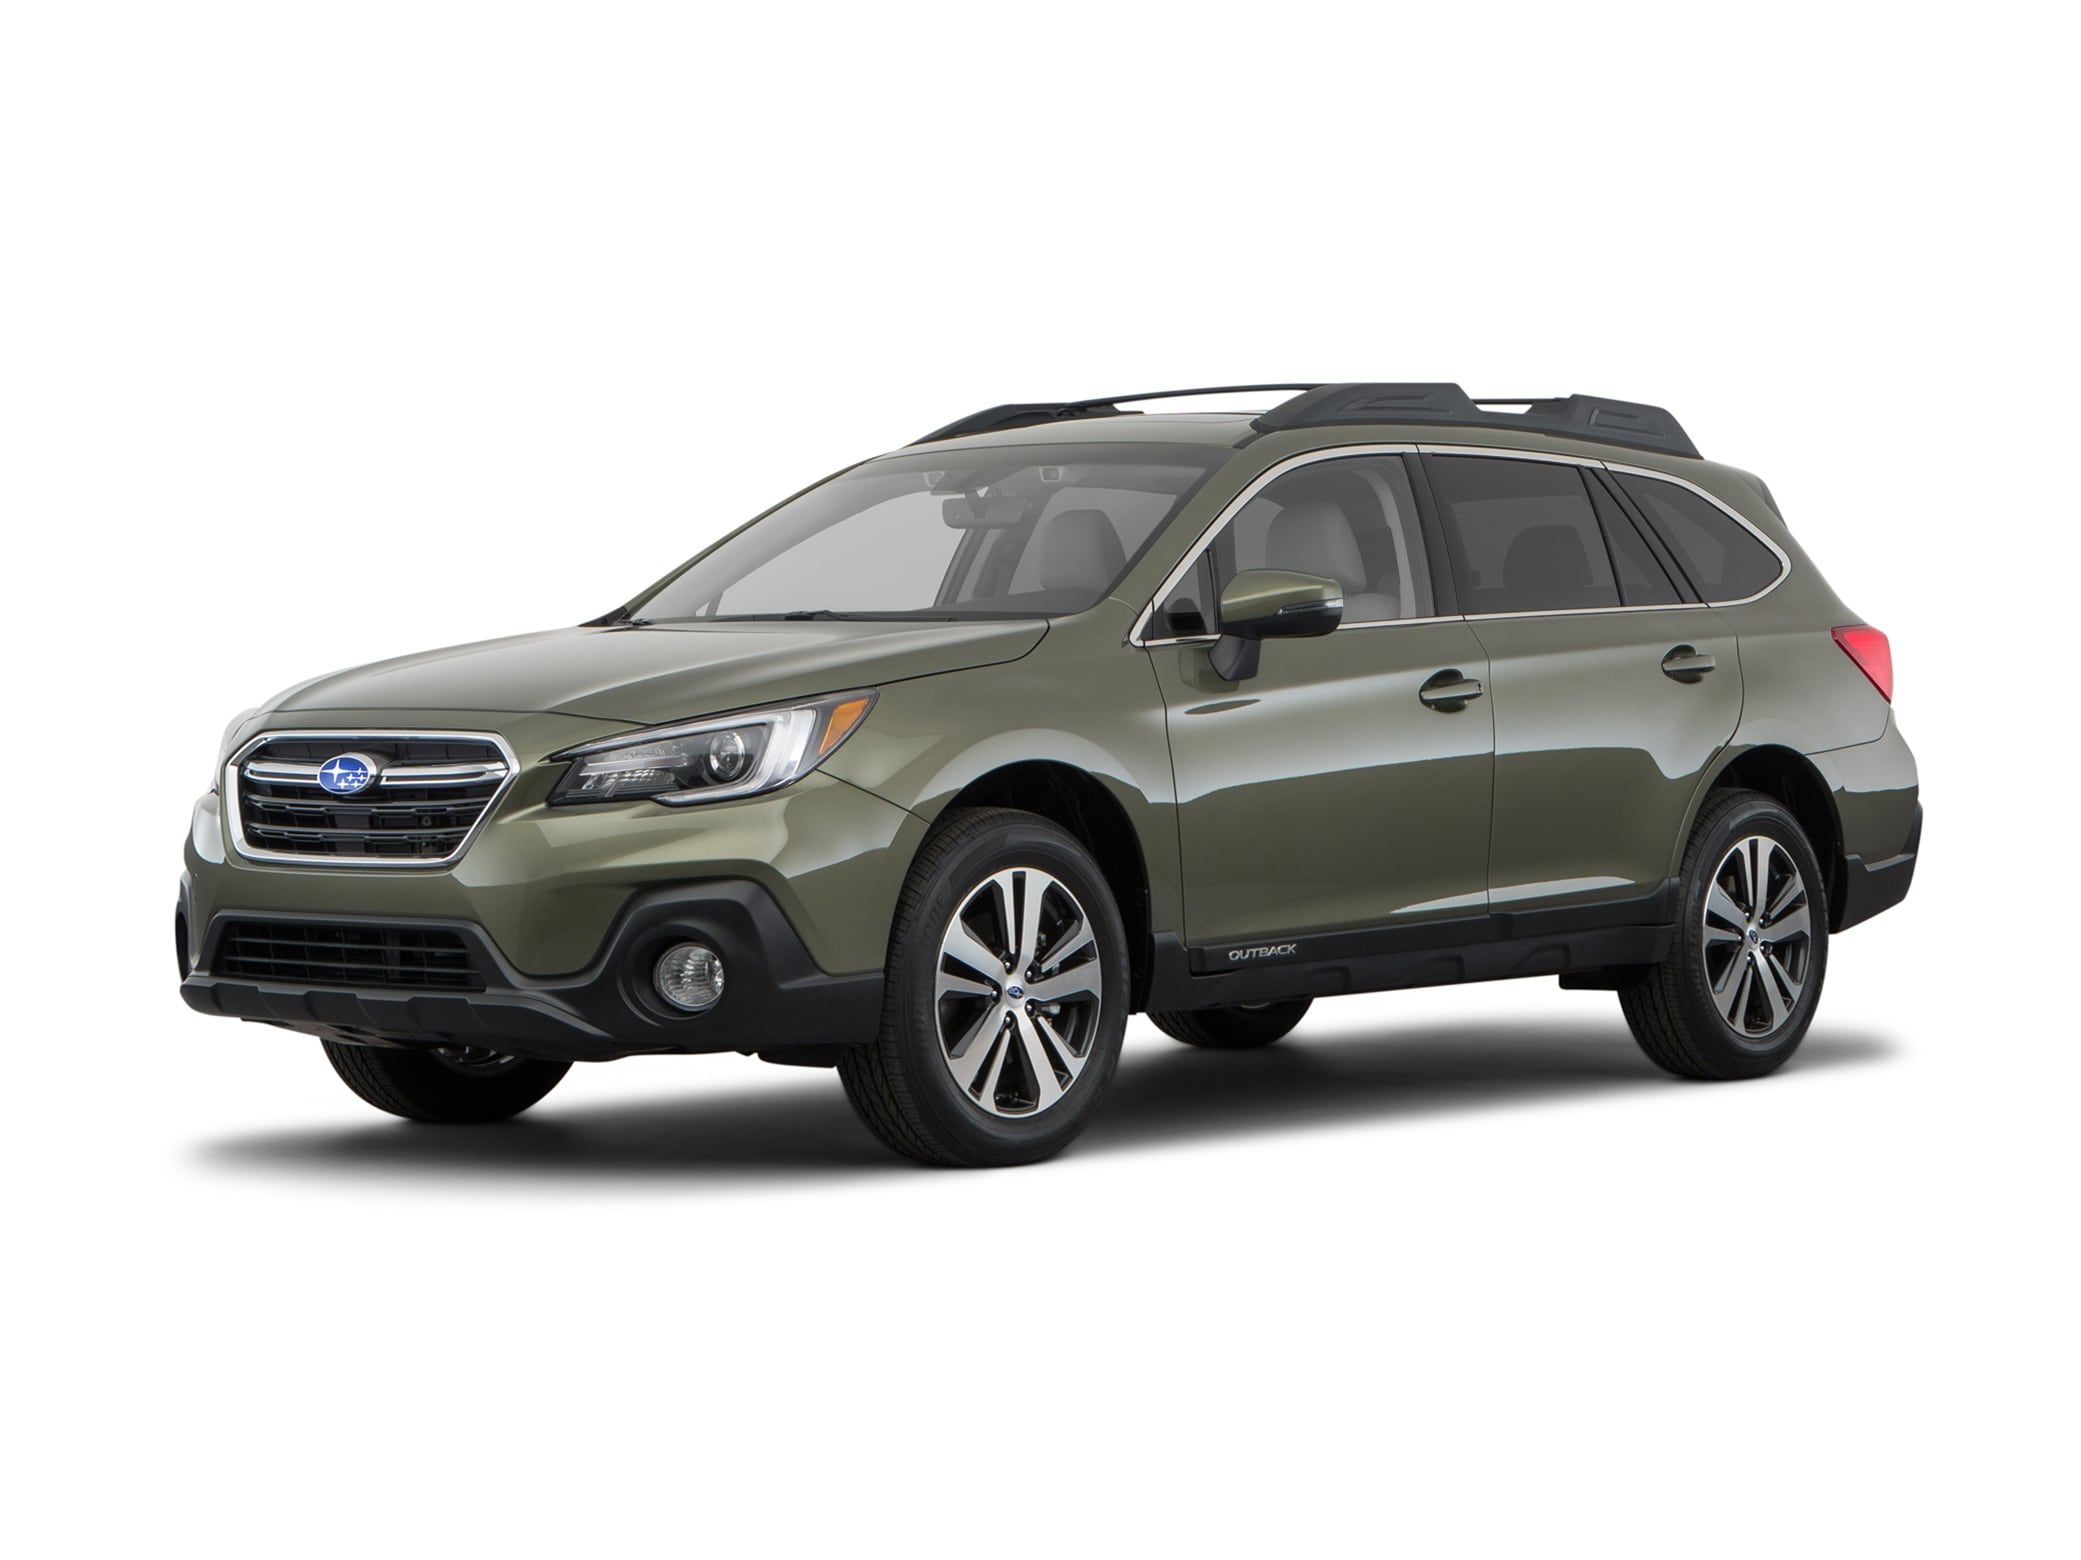 Oil For Subaru Outback >> New 2019 Subaru Outback For Sale In Franklin Pa Near Oil City Titusville Clairion Pa Vin 4s4bsenc4k3390715